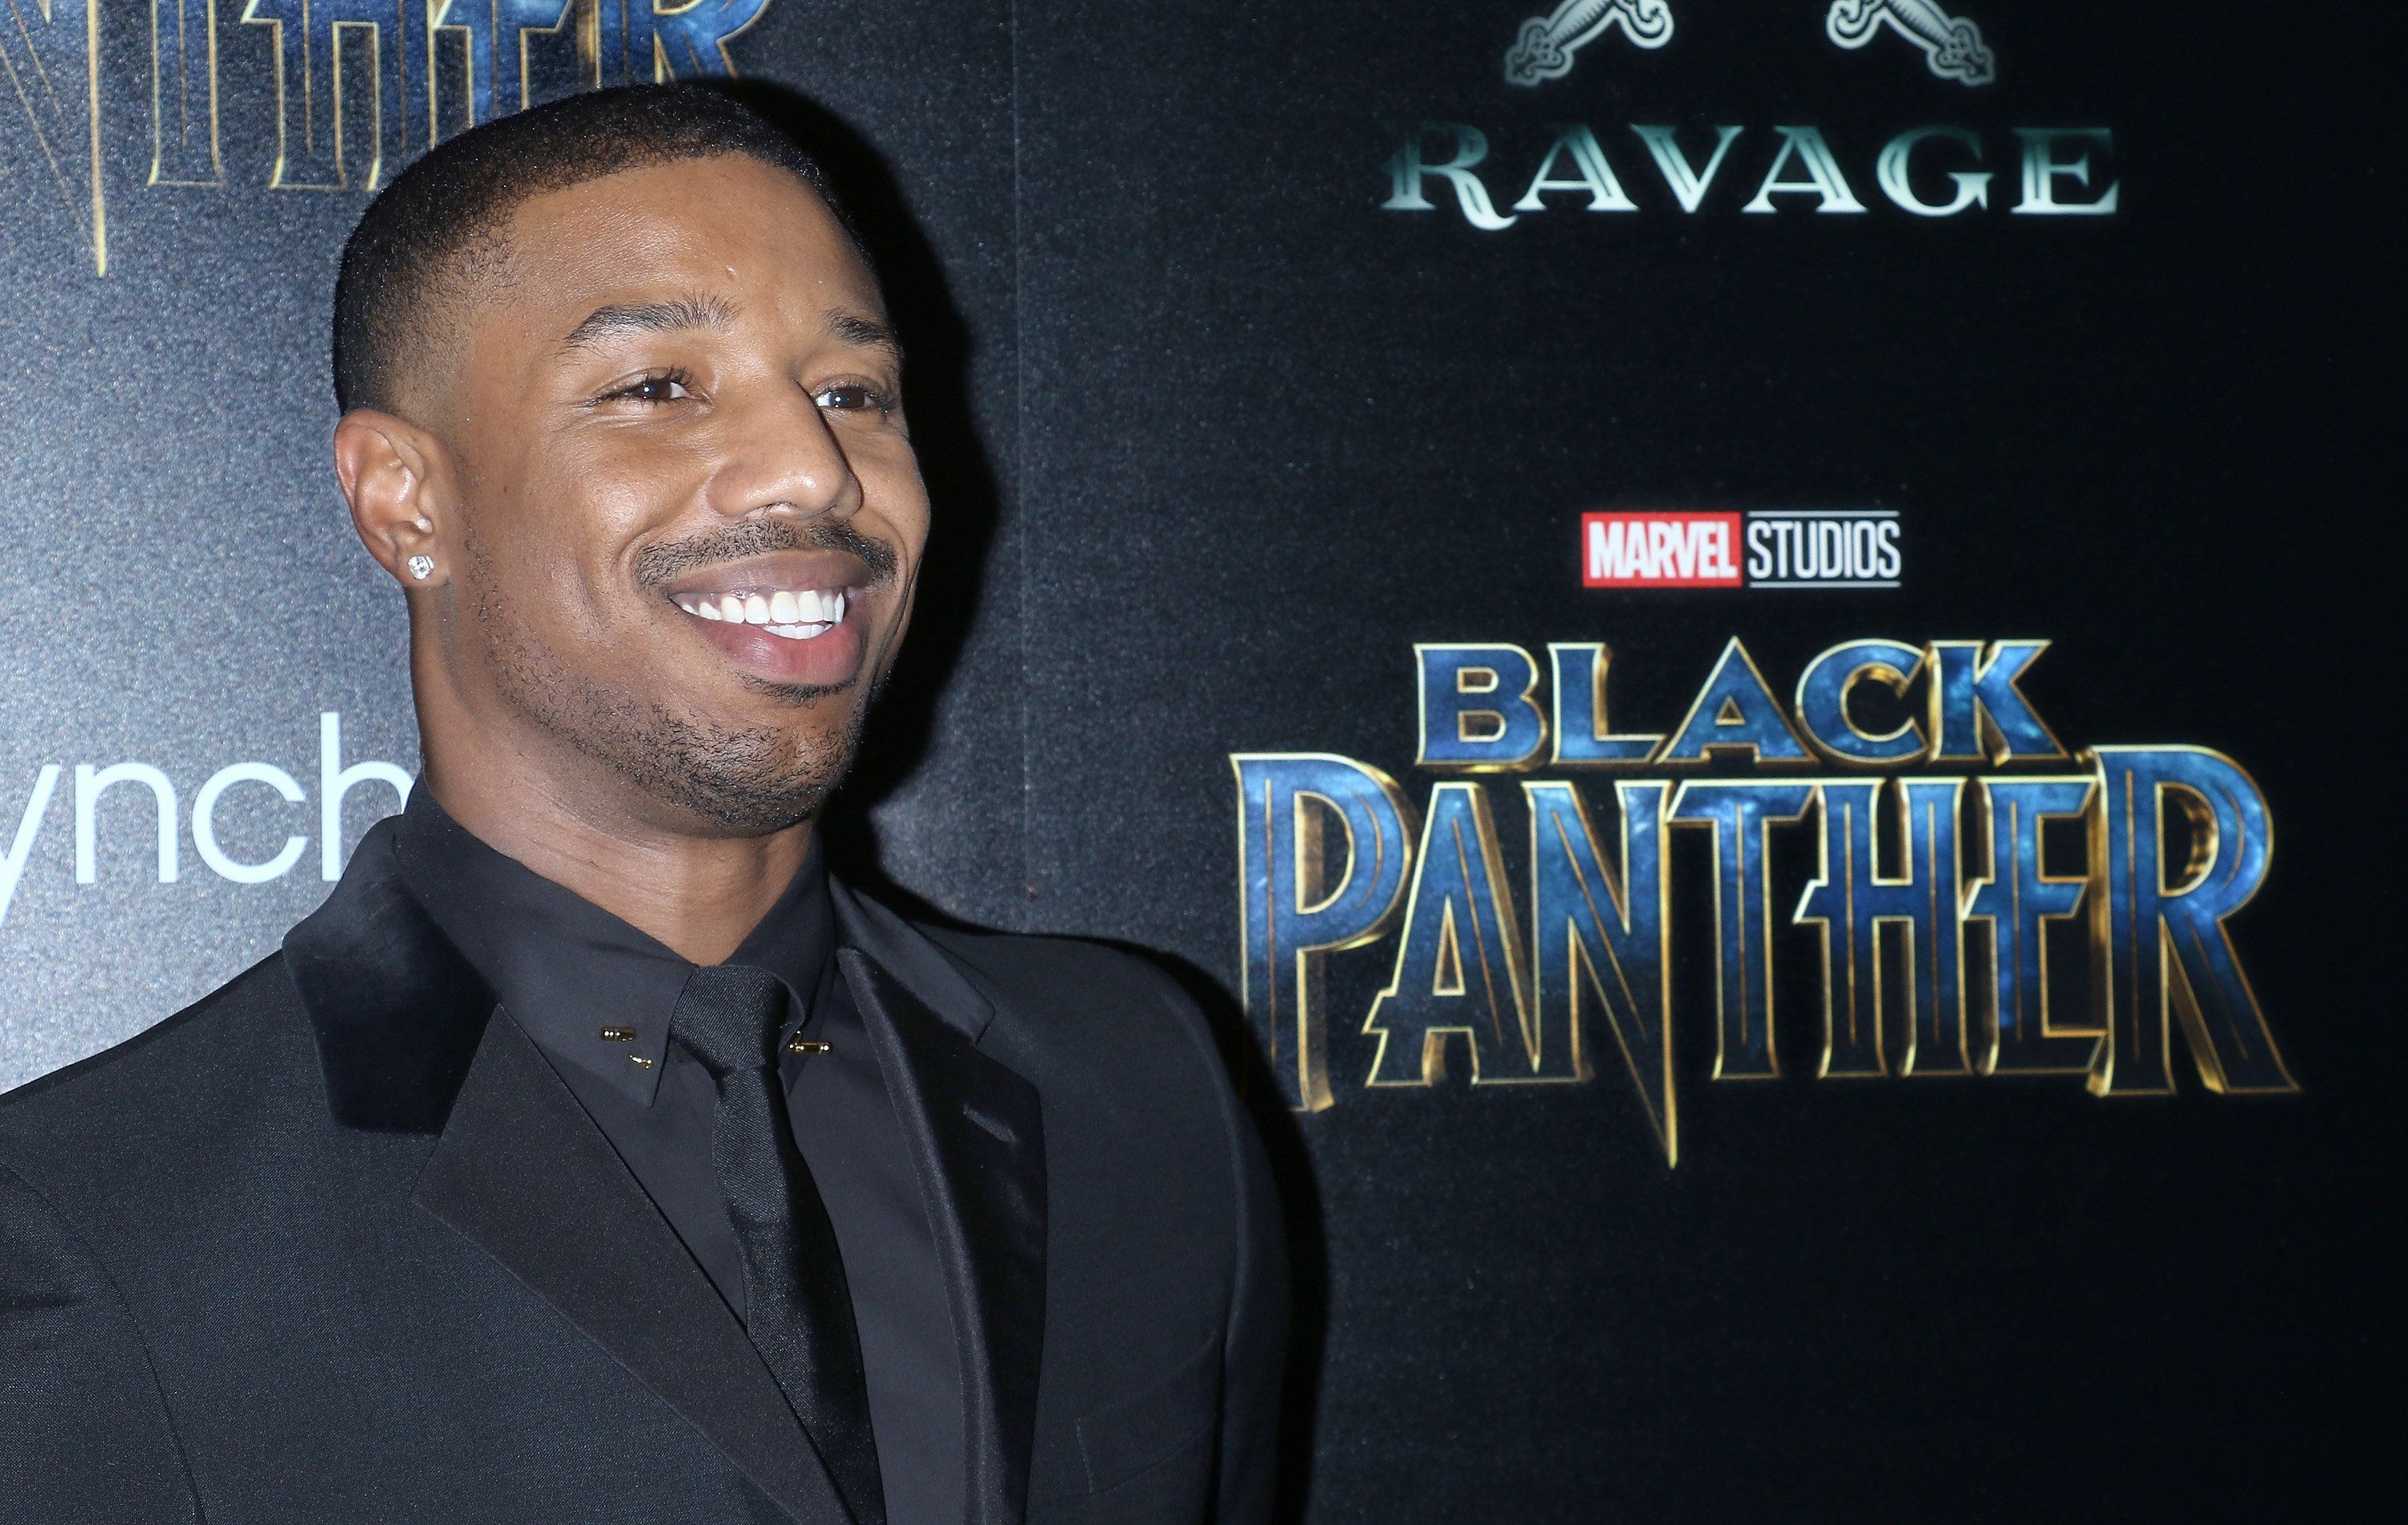 NEW YORK, NY - FEBRUARY 13:  Actor Michael B. Jordan attends the screening of Marvel Studios' 'Black Panther' hosted by The Cinema Society with Ravage Wines and Synchrony at Museum of Modern Art on February 13, 2018 in New York City.  (Photo by Jim Spellman/WireImage)